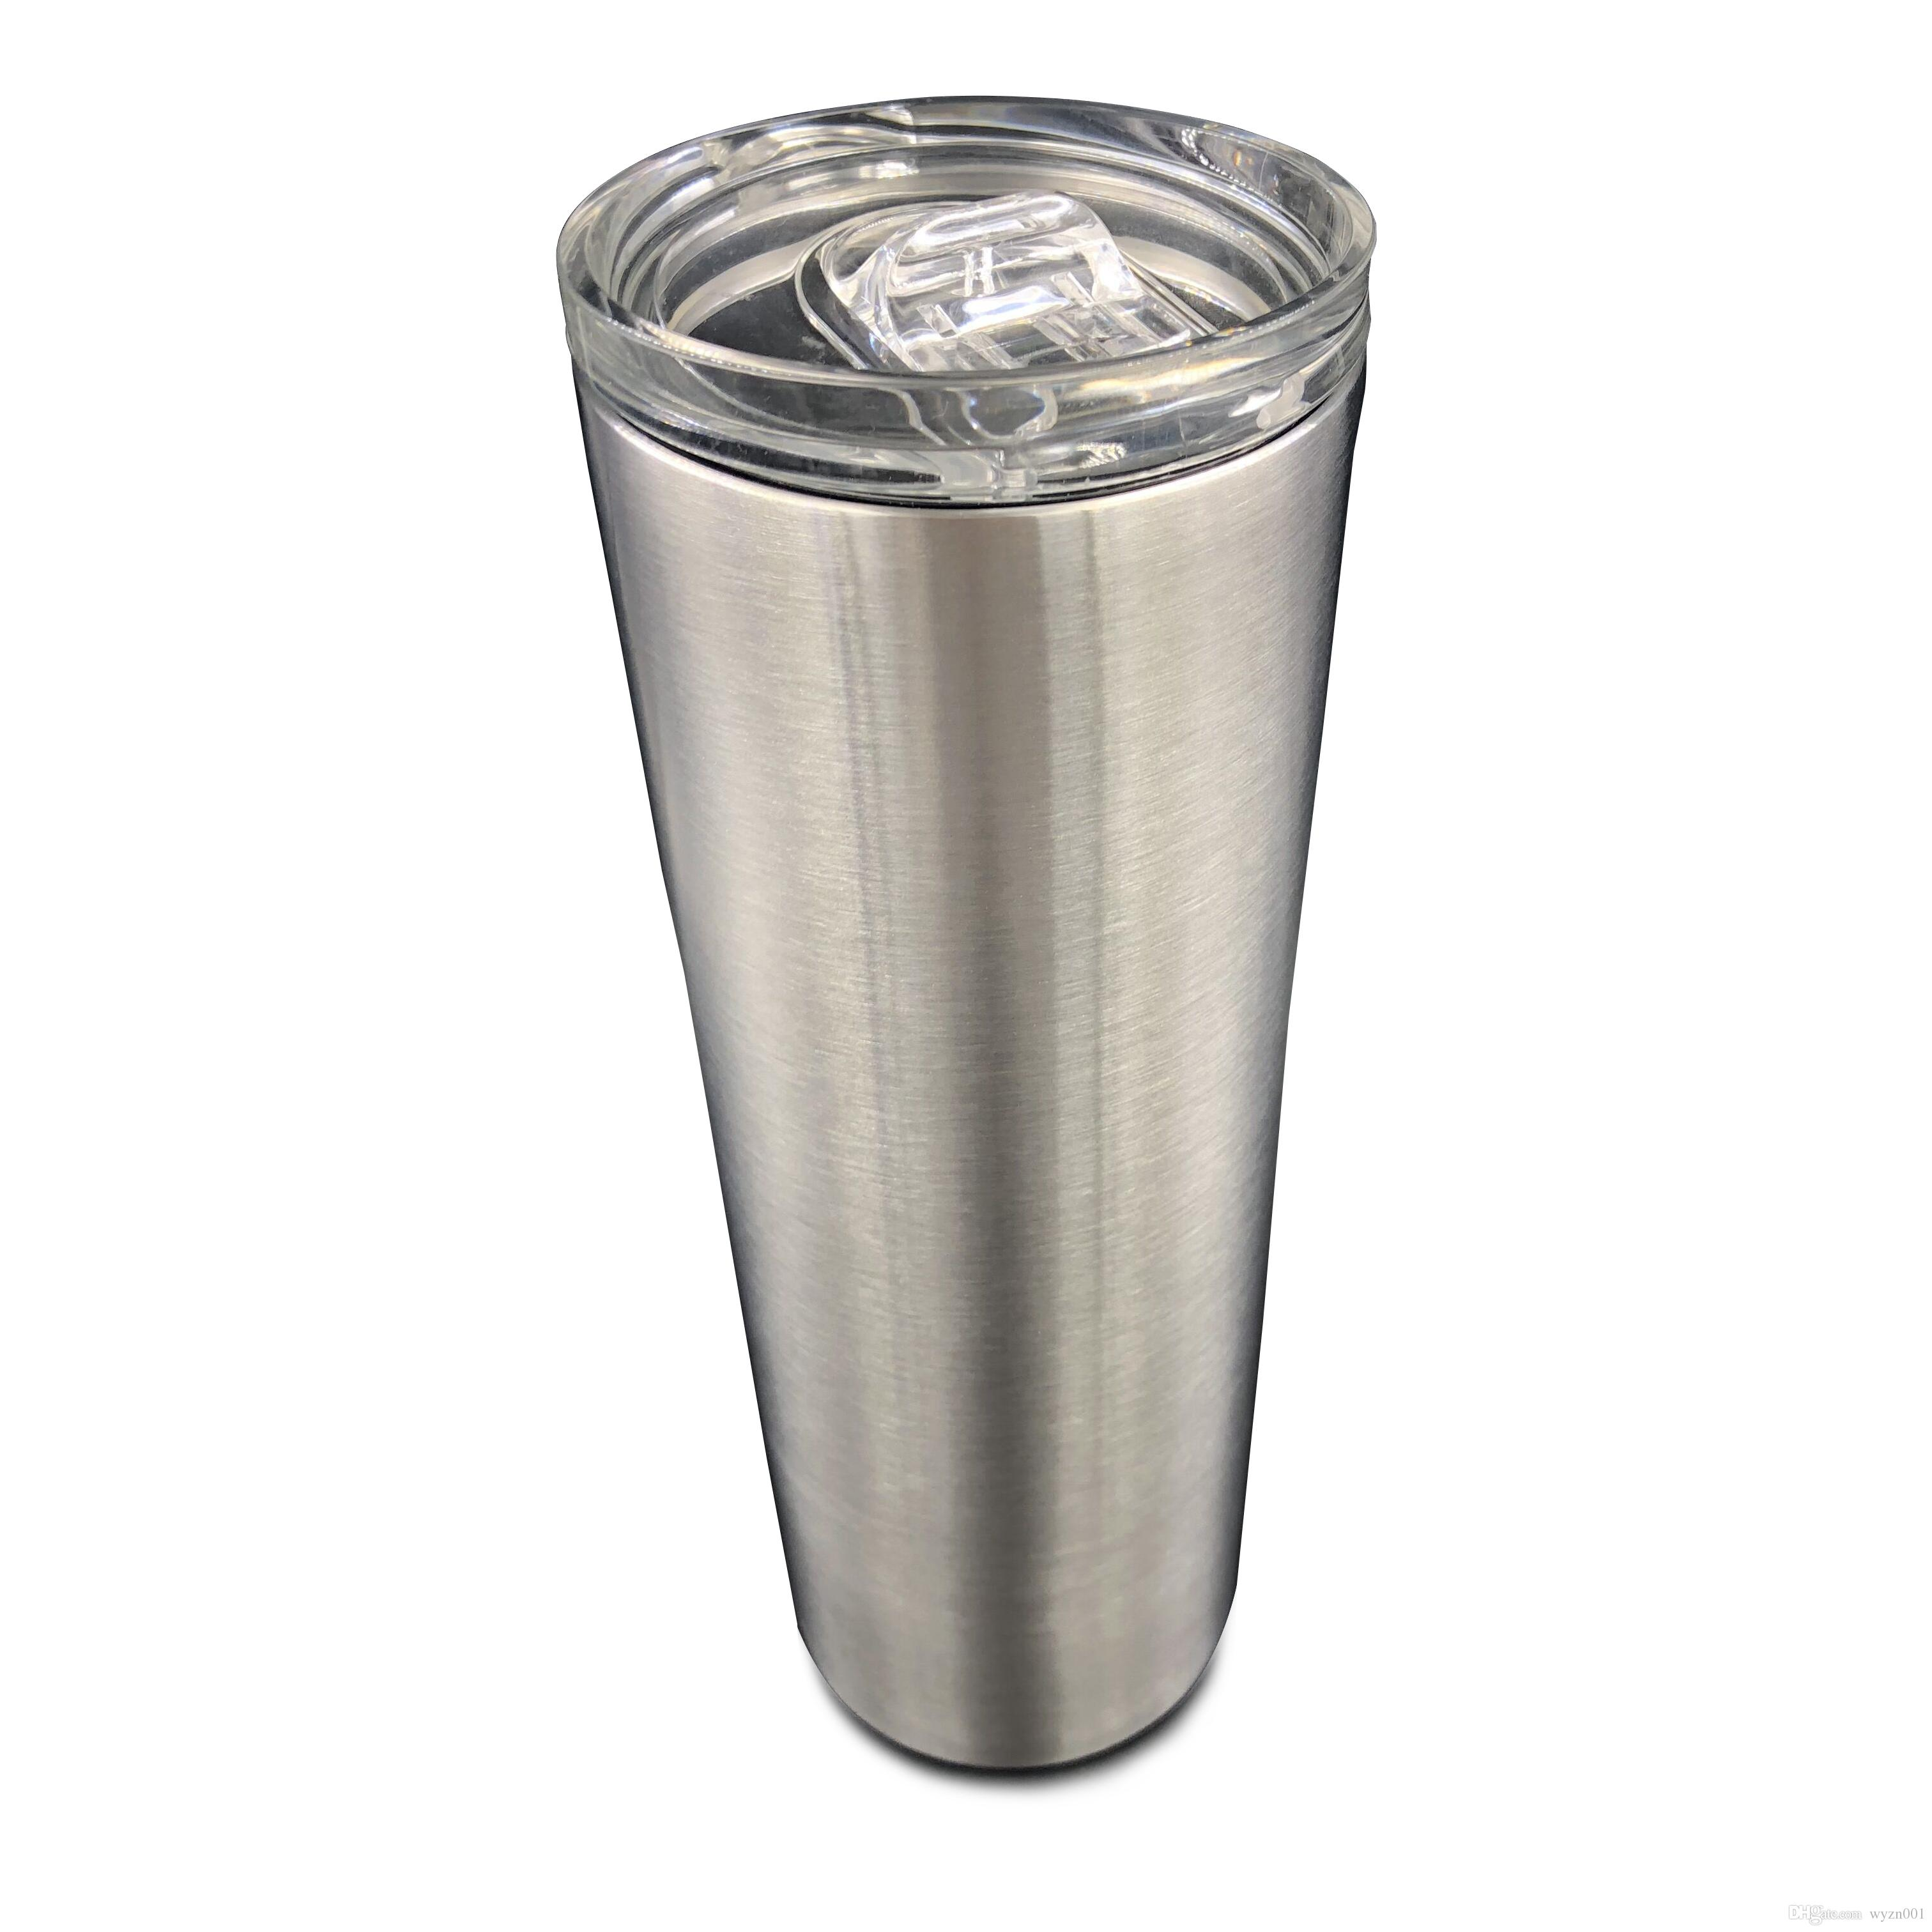 2a14bd005a0 20OZ BPA Free Stainless Steel SkinnyTumbler Cups Double Walled Vacuum  Insulated Tumbler Mugs With Lid And Straw Sets Of Coffee Mugs Shop Coffee  Mugs From ...